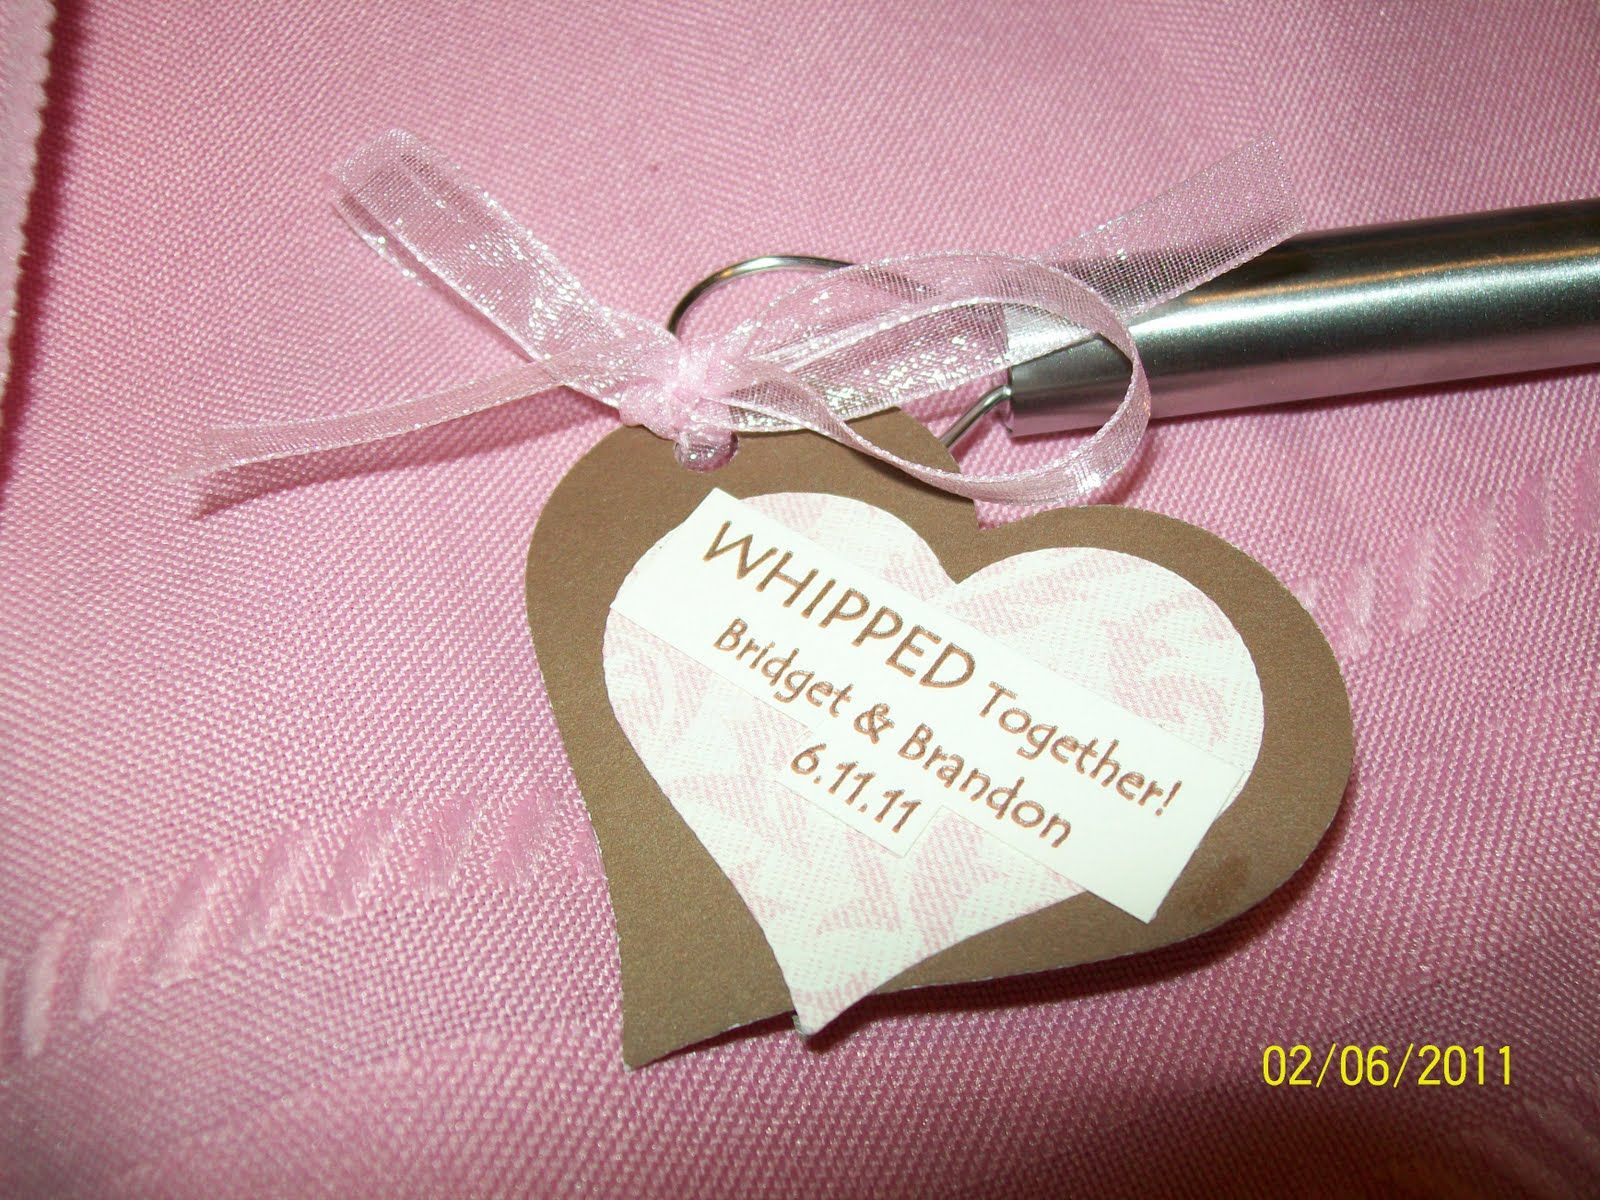 wedding favors for chefs | Scrapbook Pad Ink | Liz | Pinterest ...